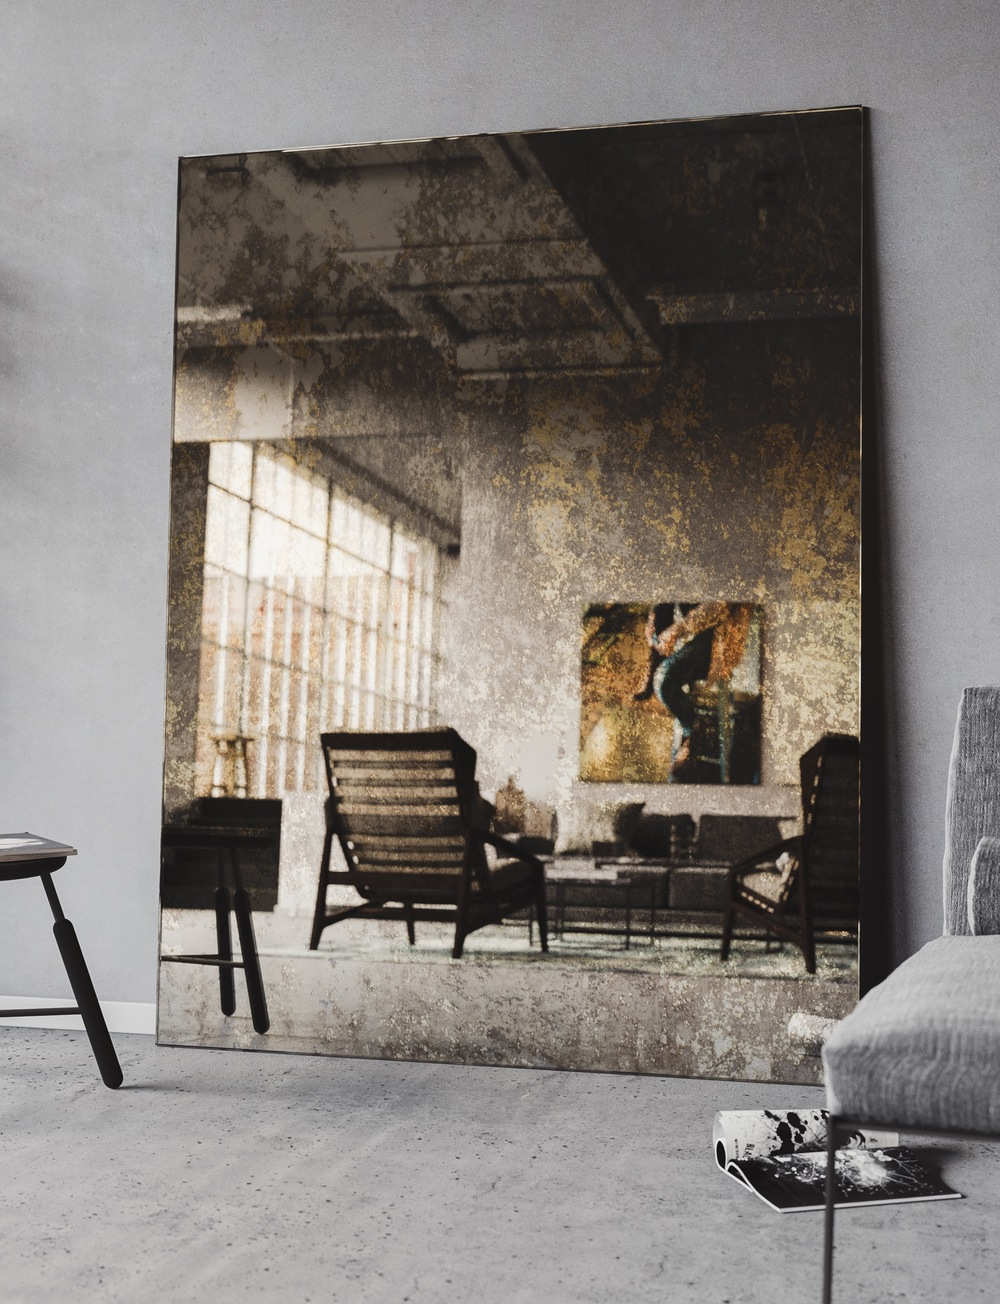 Large mirror photographed in industrial space